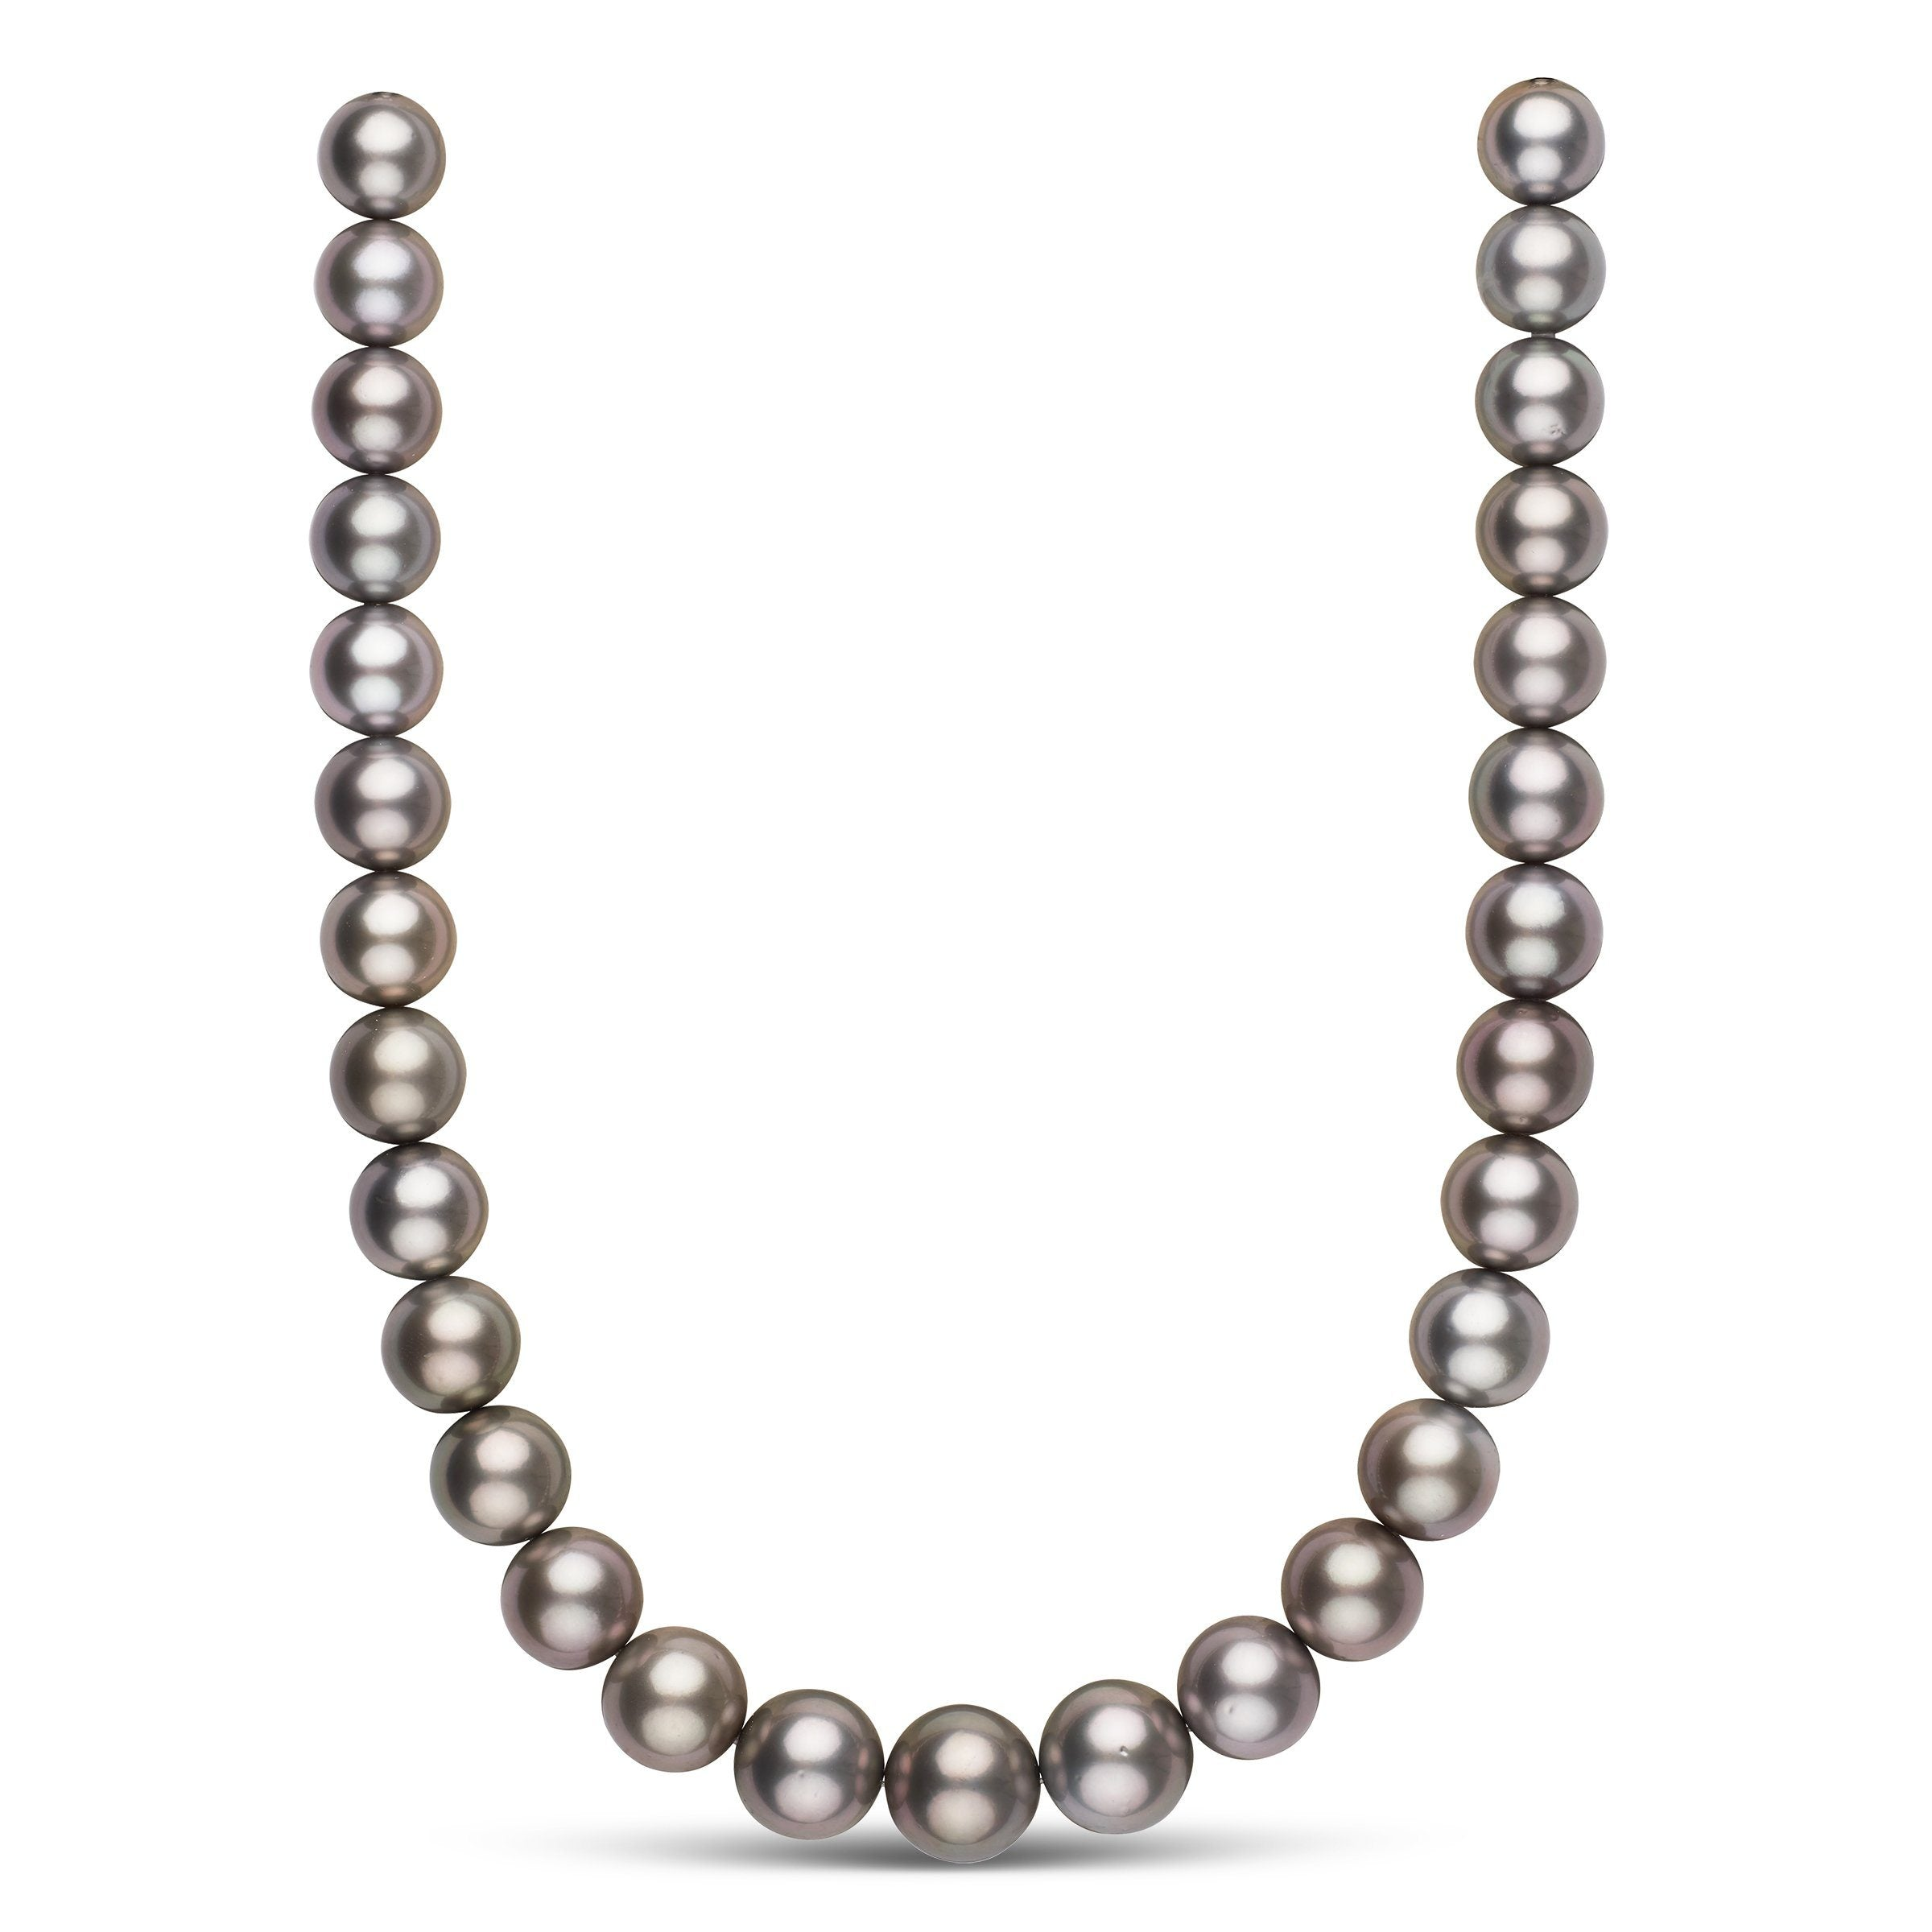 13.0-15.8 mm AA+/AAA Tahitian Round Pearl Necklace